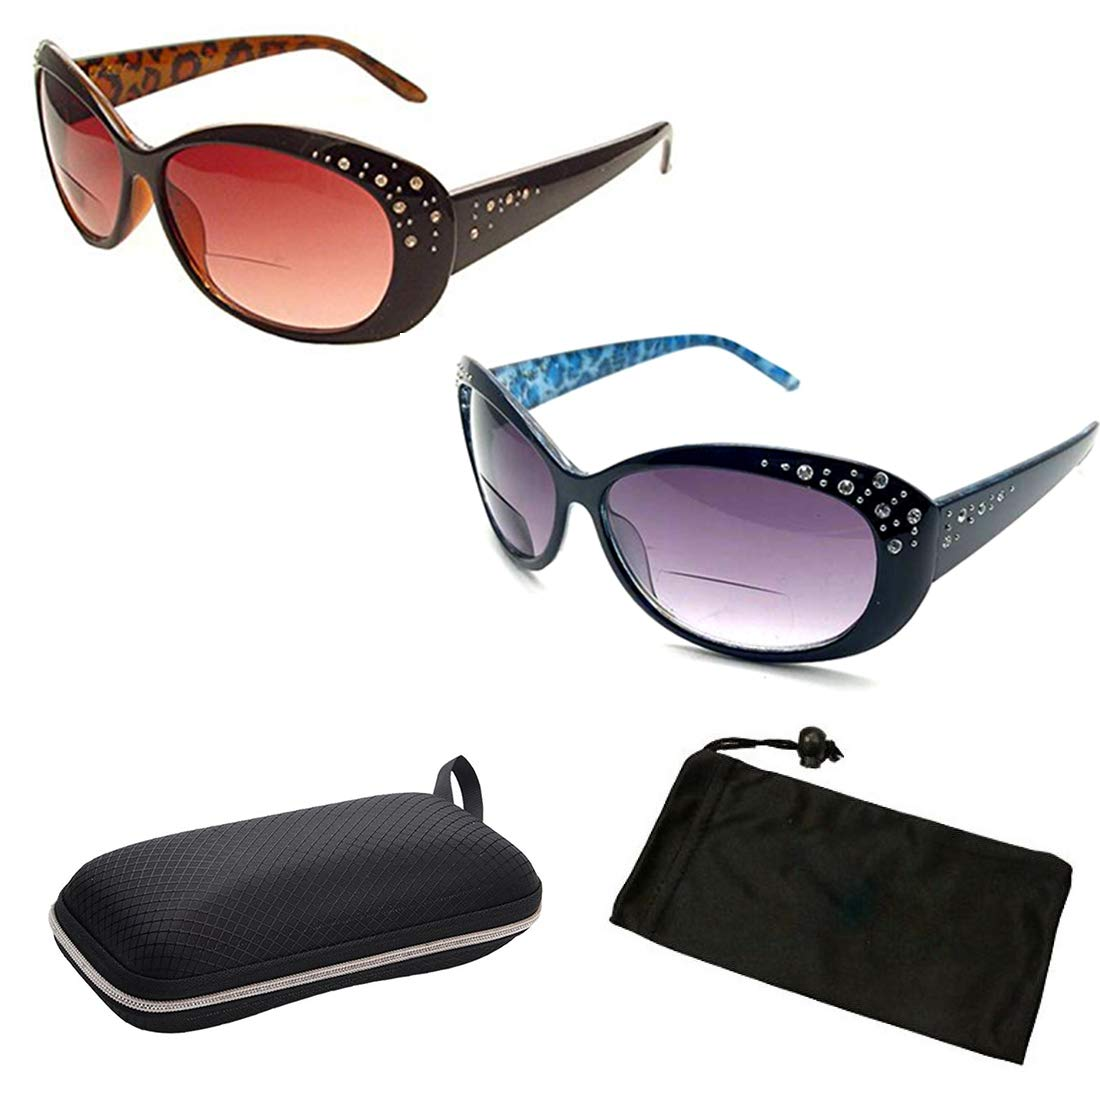 754c1b8b403 Amazon.com  Beautiful Women s Rhinestone Bifocal Sun Readers Reading +  Sunglasses All In One (2PK Brown Black